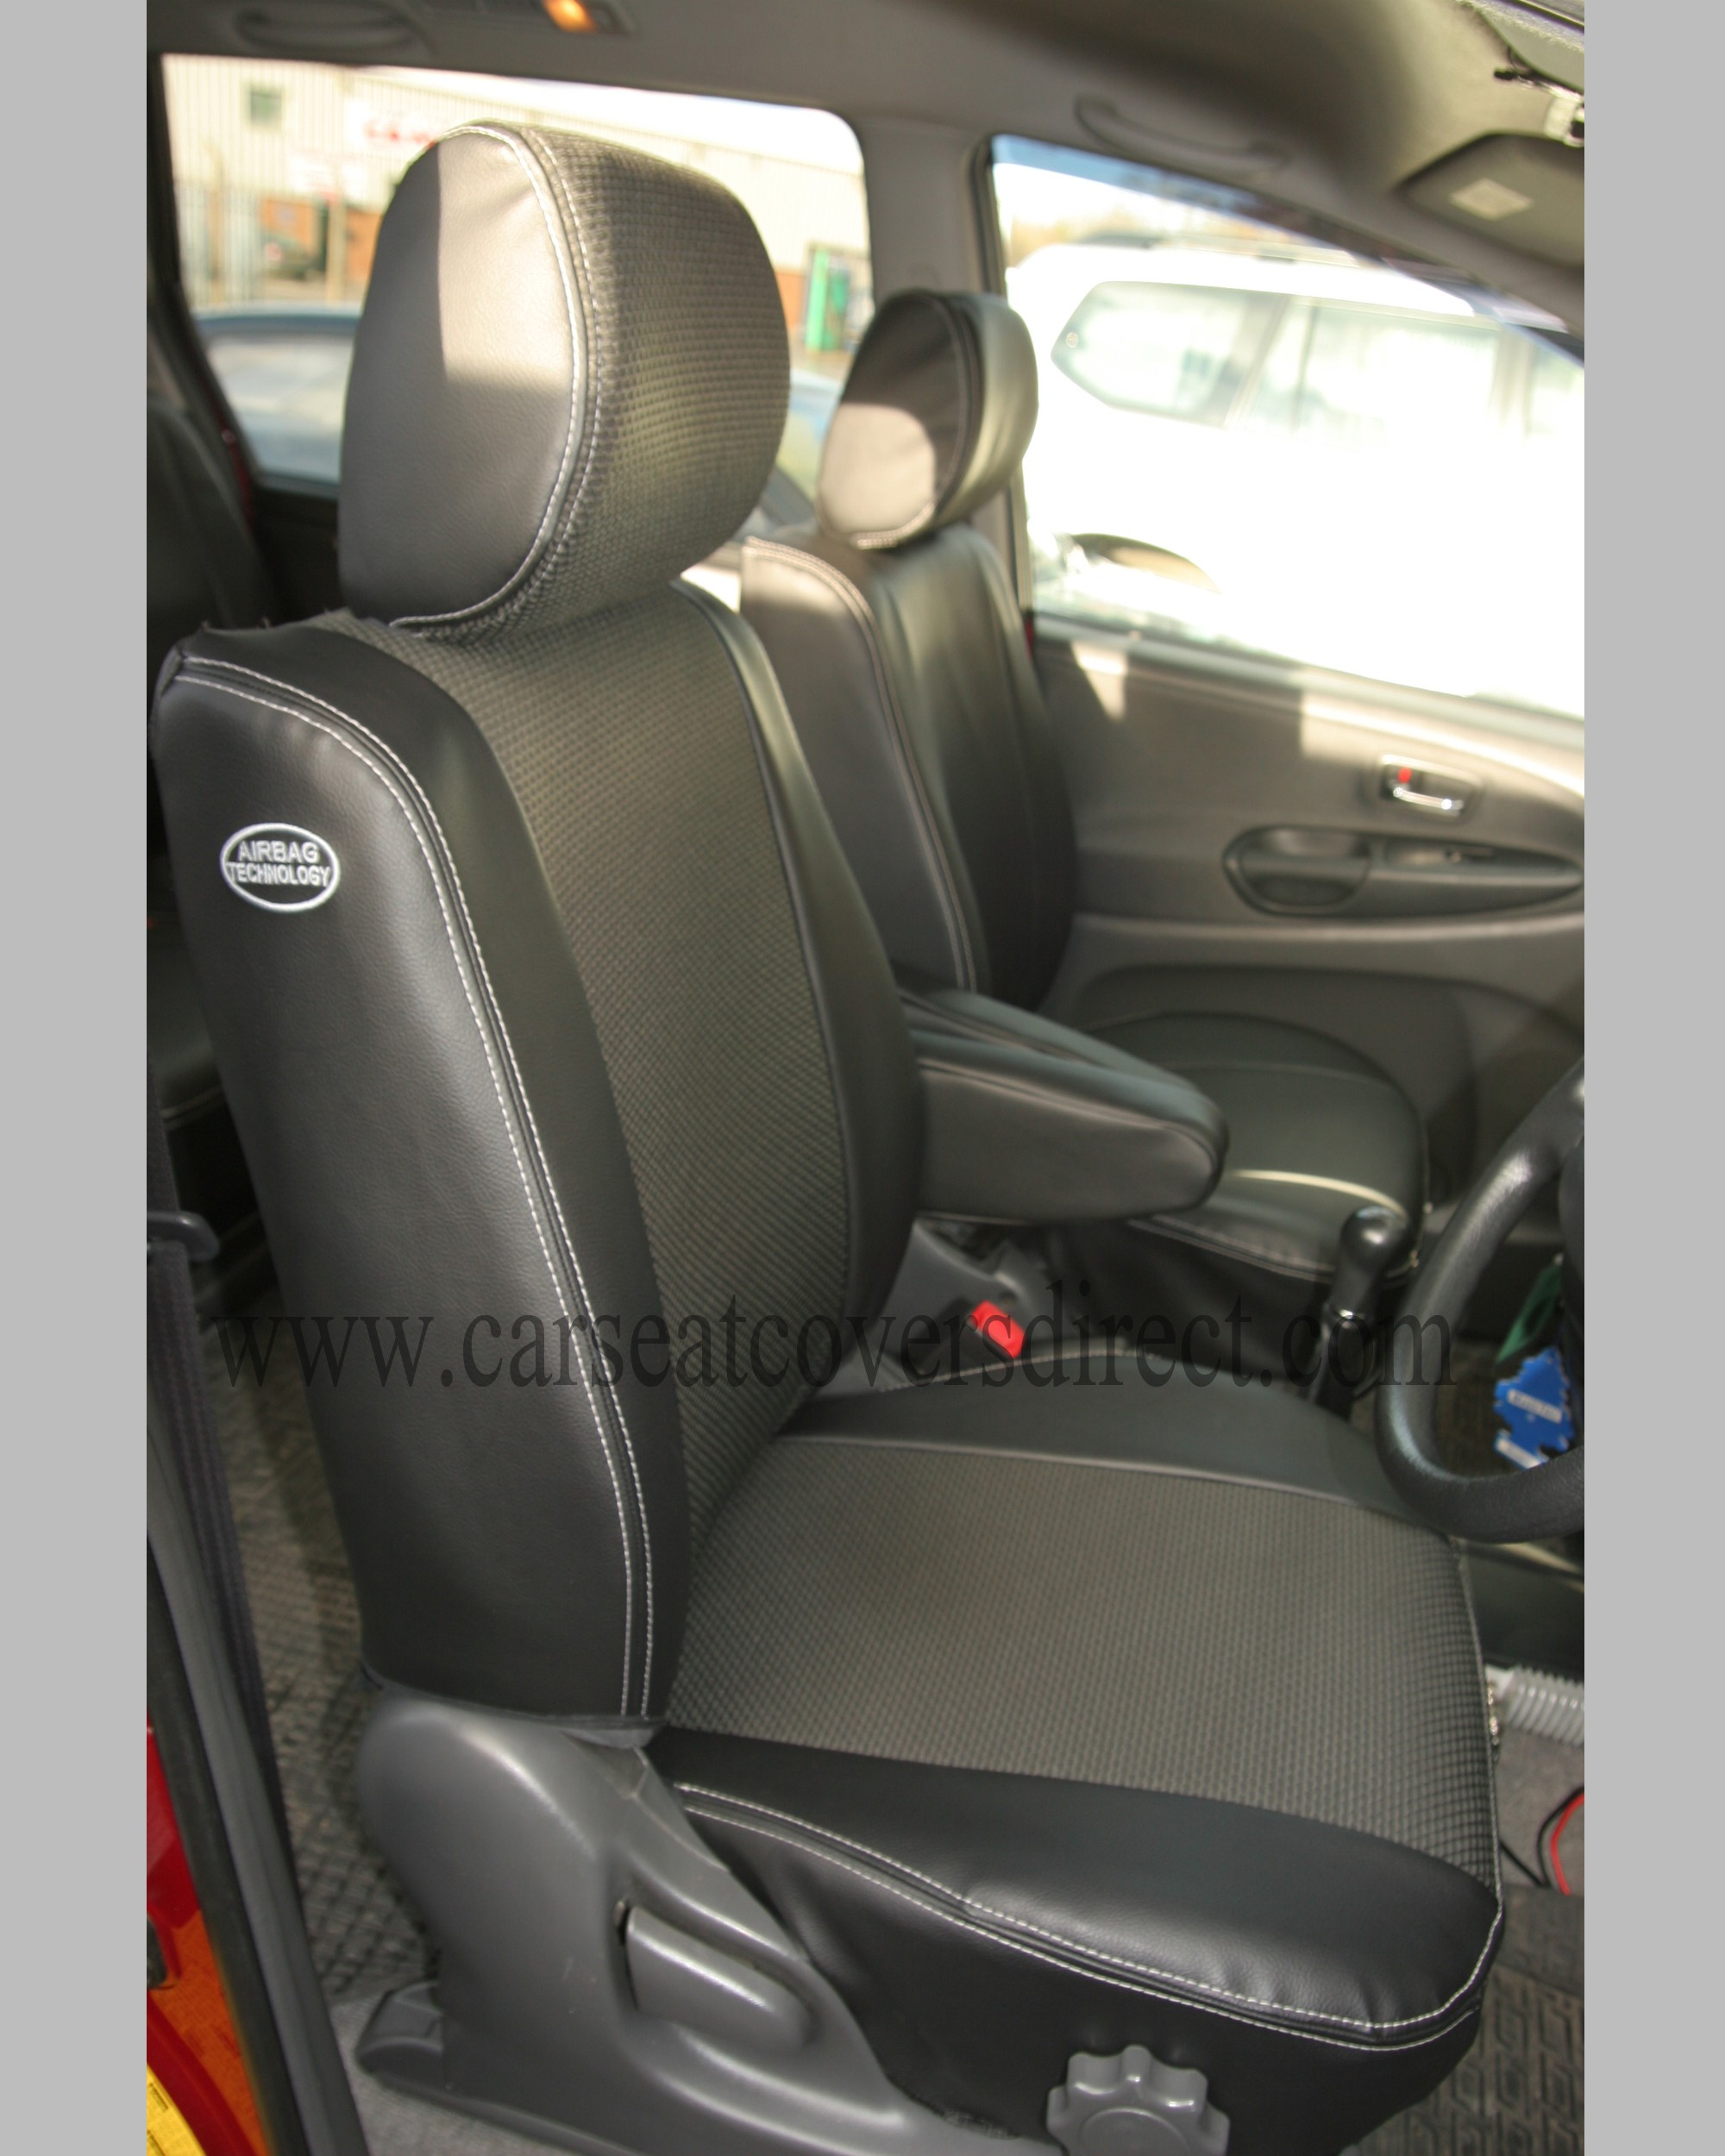 TOYOTA PREVIA Taxi Pack Seat Covers